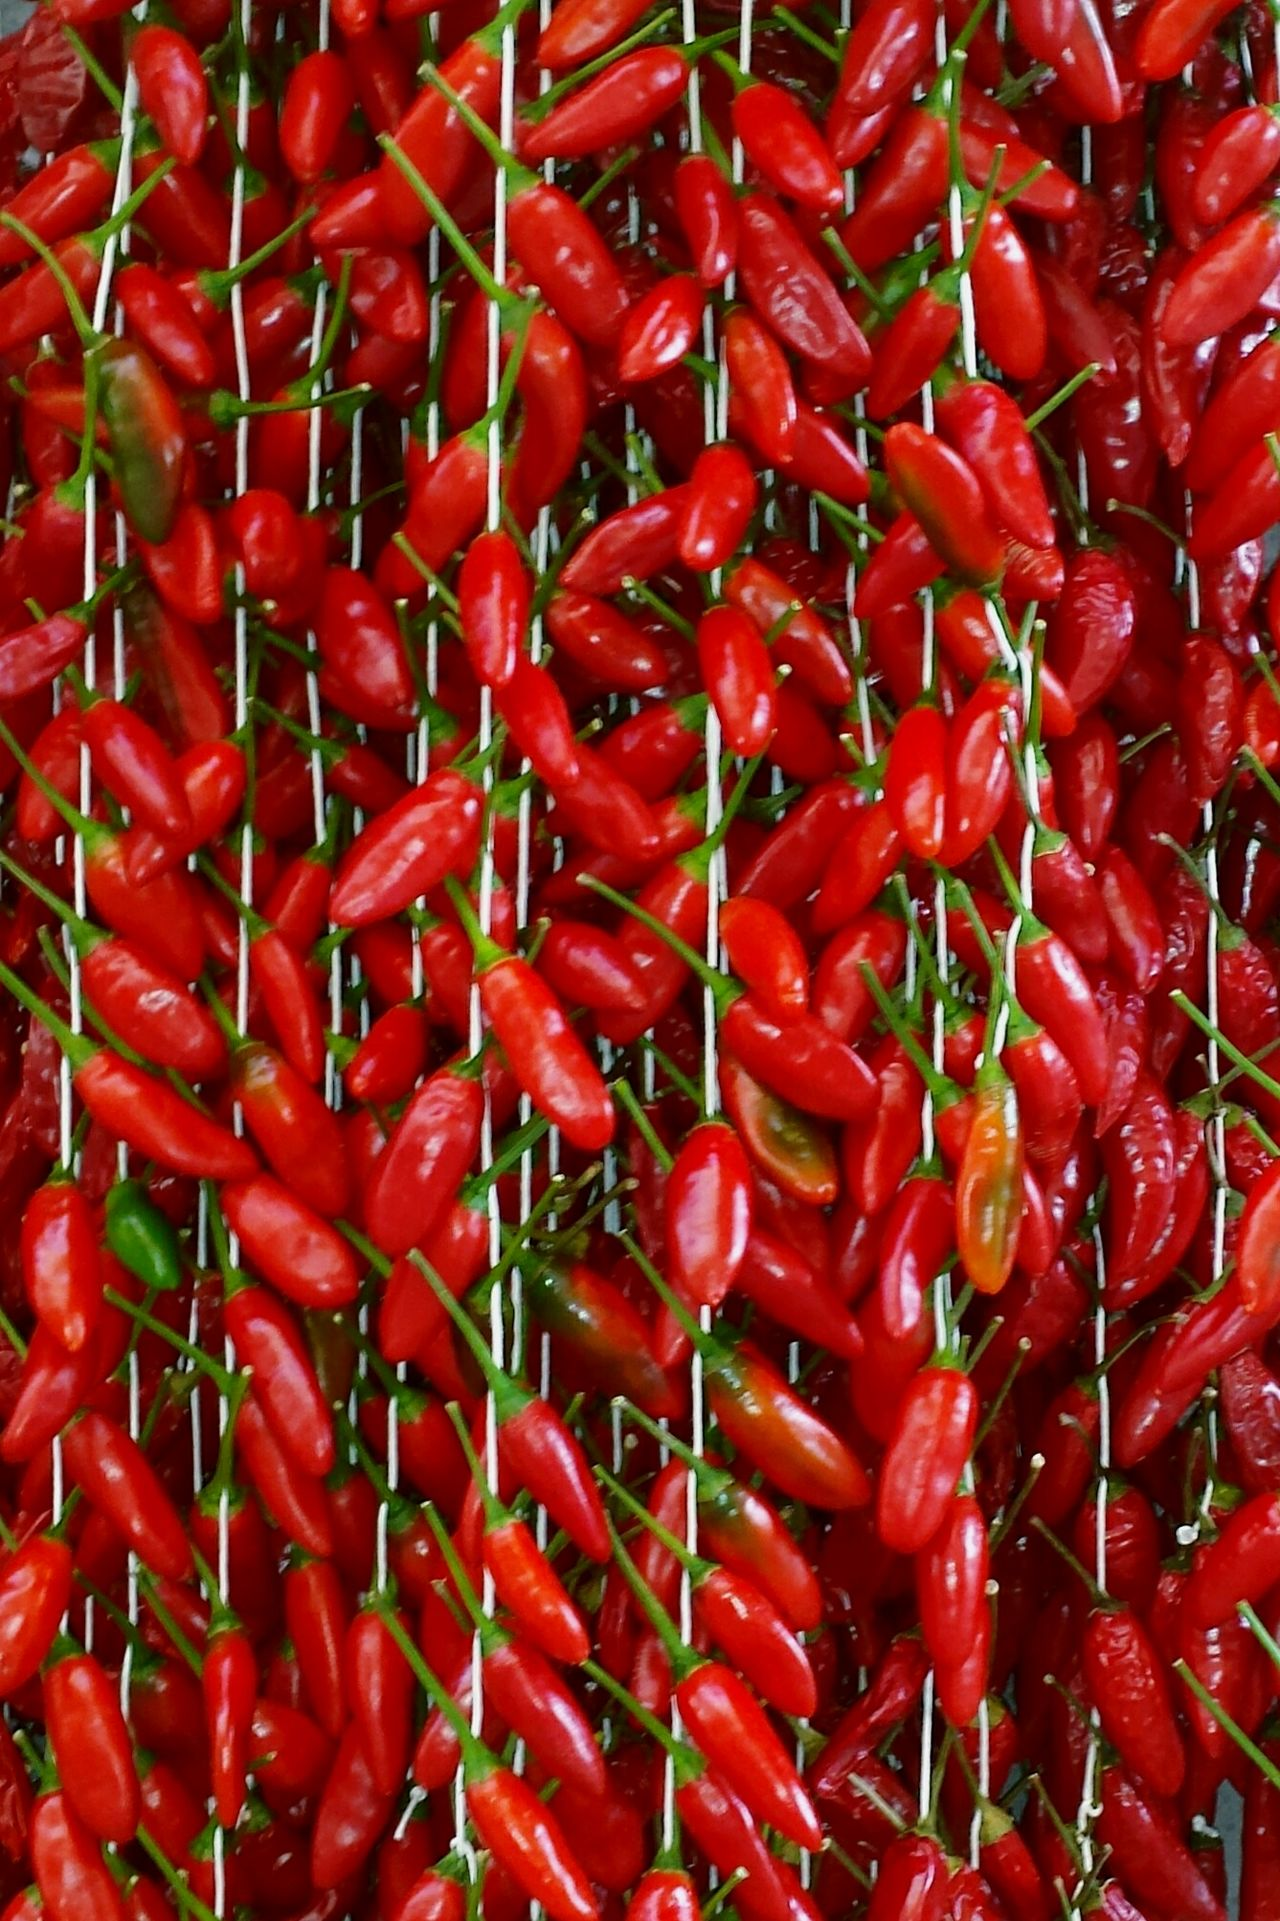 Chilis Red Red Red  Color Palette Colorful Colour Of Life Vegetables Spices Spice Up Your Life Spicy Food Spice It Up Chili Peppers Chili Milli Chilies Chilies On A String Ladyphotographerofthemonth Showcase August Just One Color Chili Red Maximum Closeness